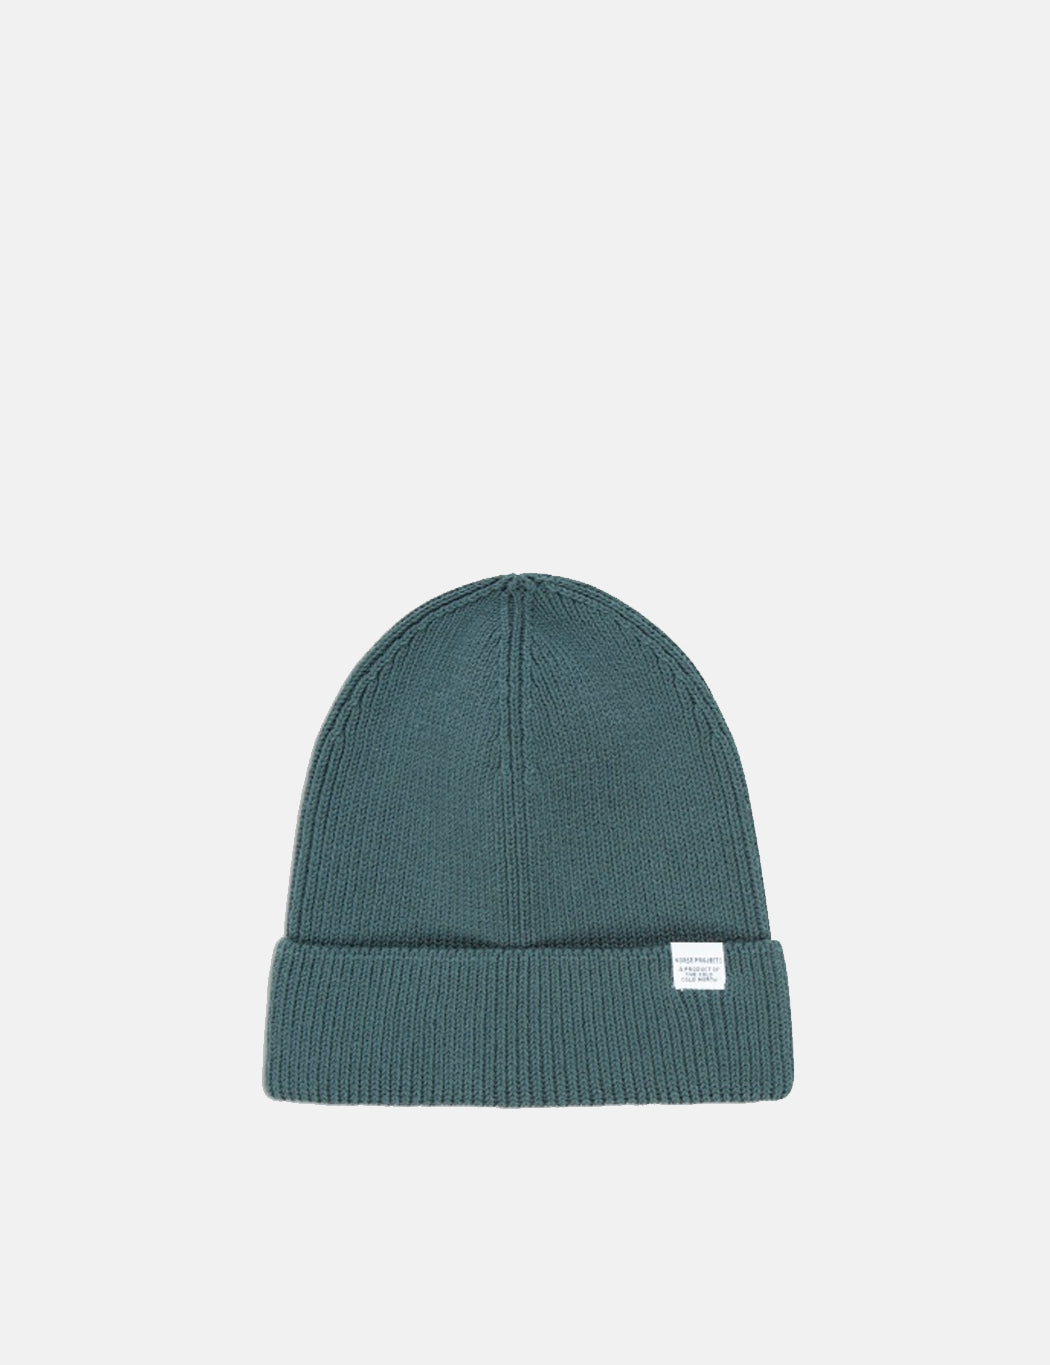 f38e32c12b4 Norse Projects Cotton Watch Beanie Hat - Verge Green